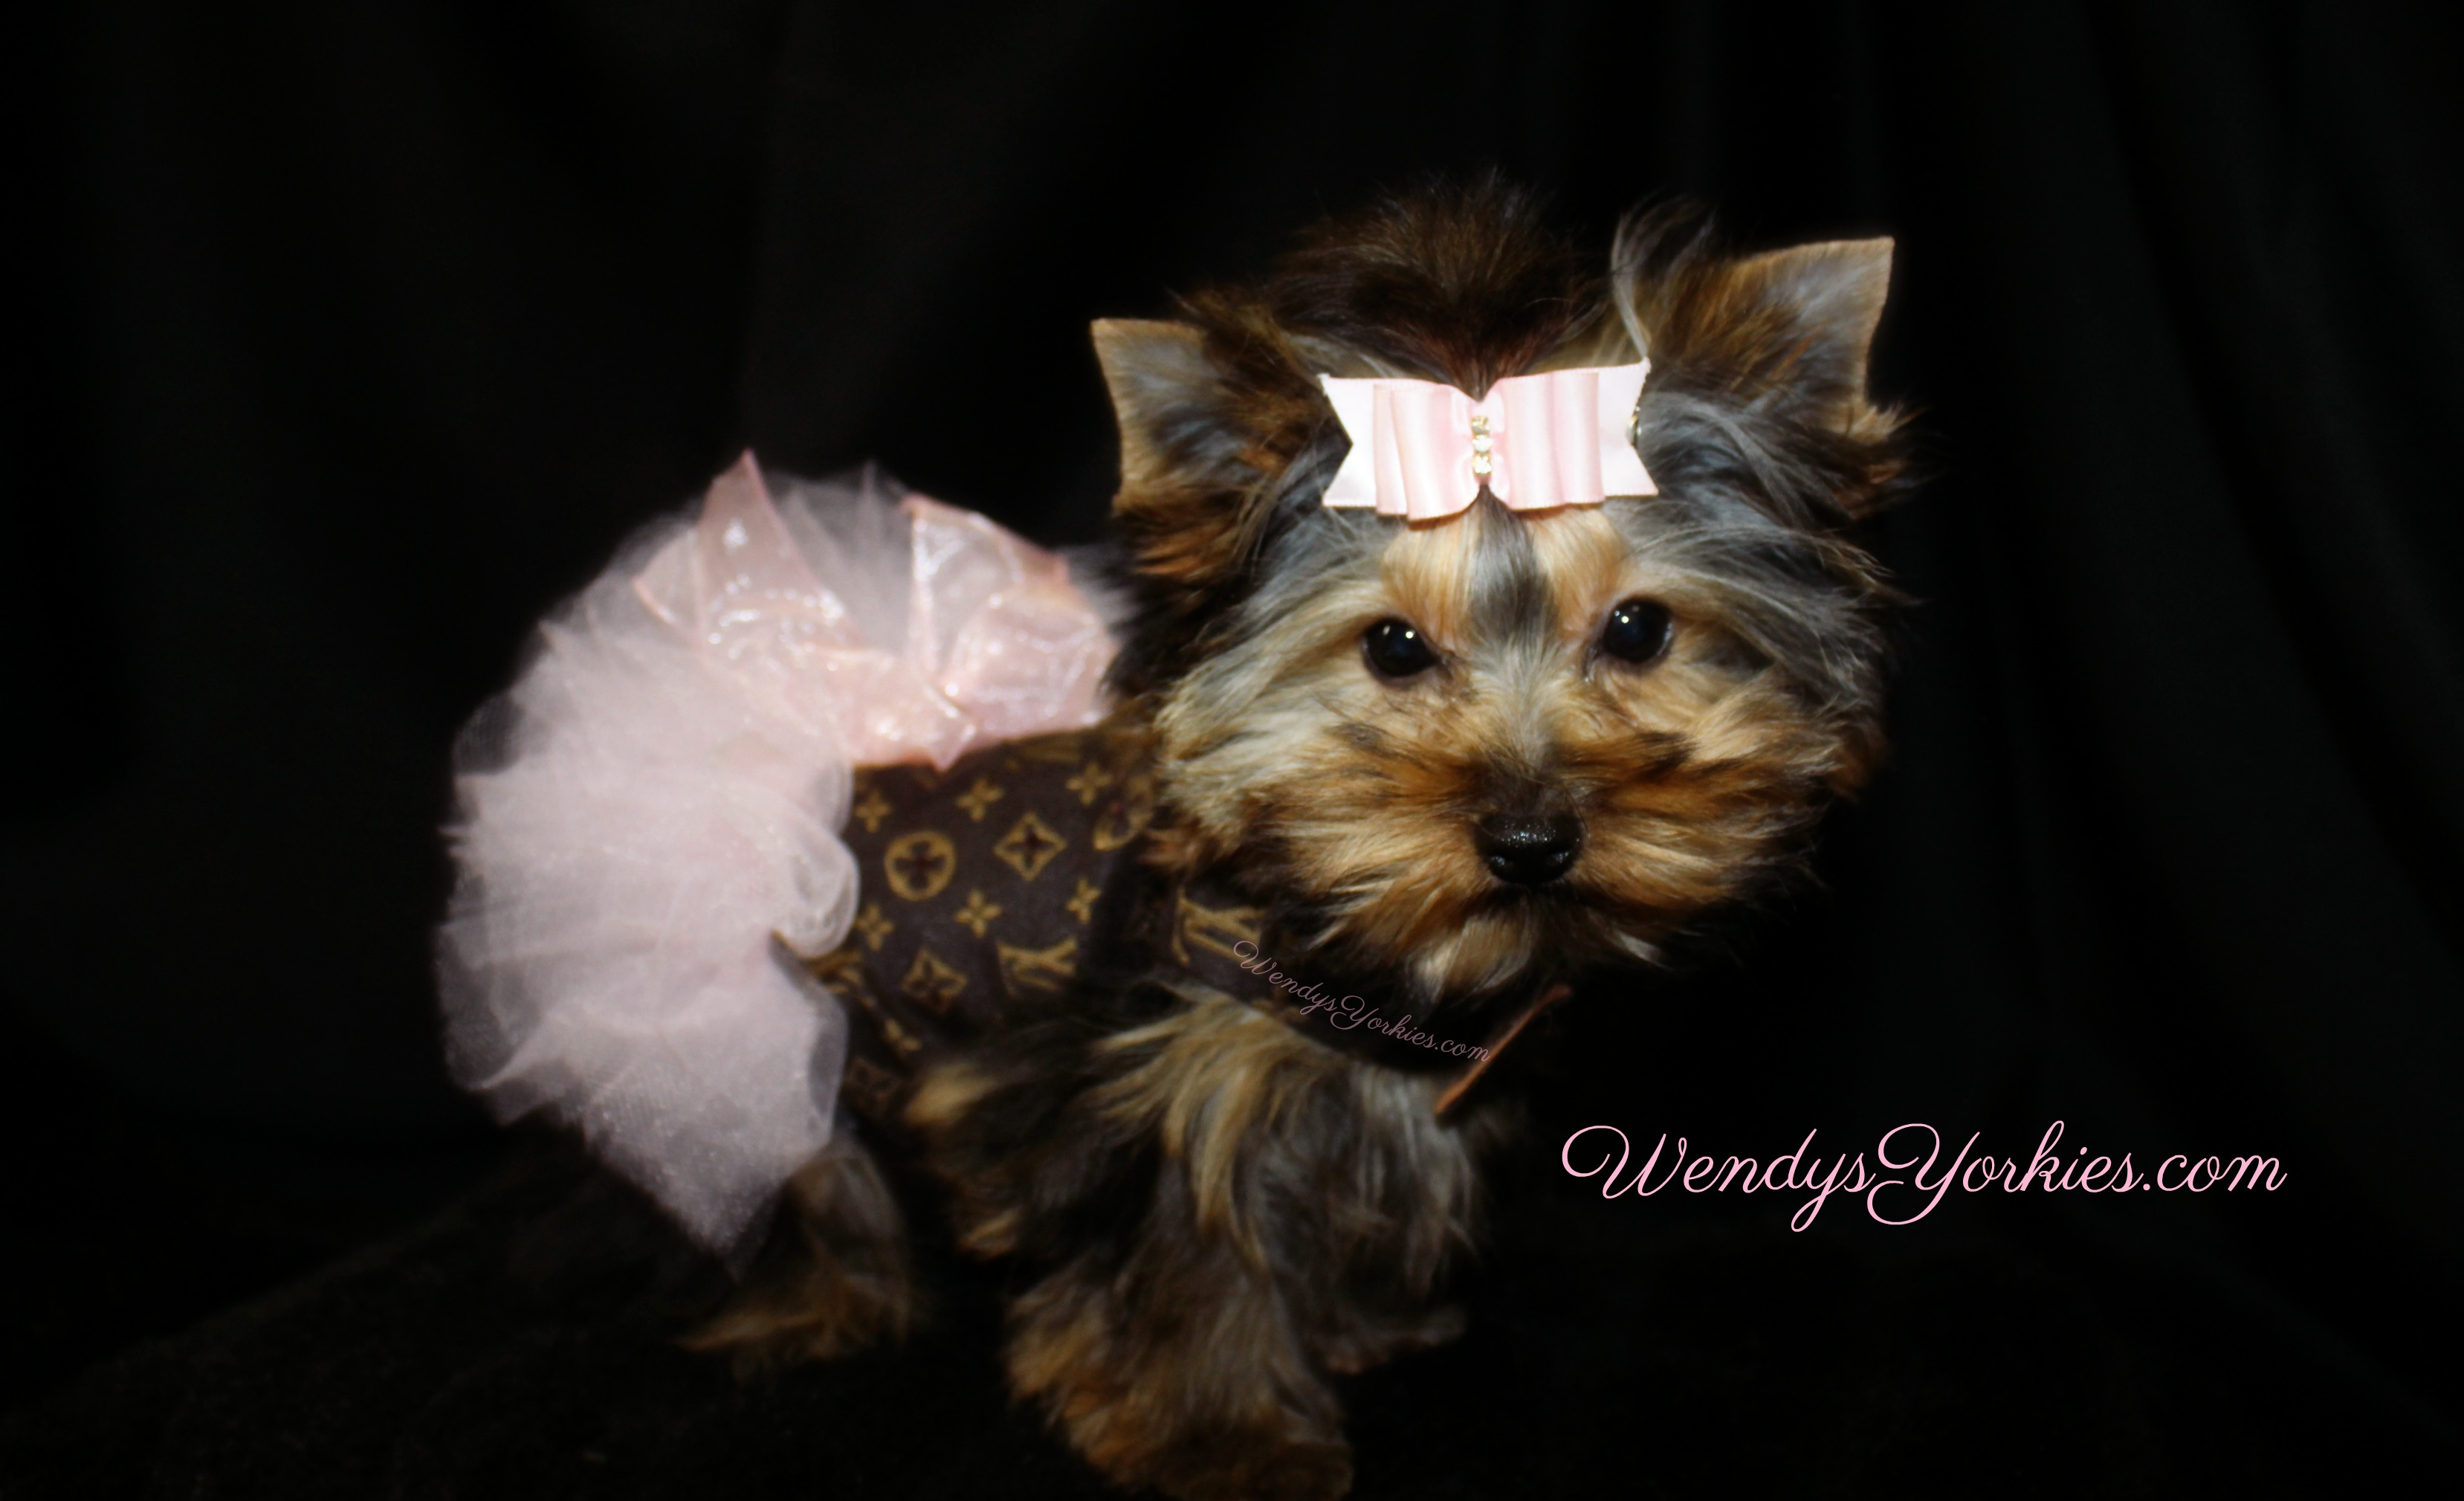 Tiny Teacup Female Yorkie puppy for sale, Snuggles, WendysYorkies.com